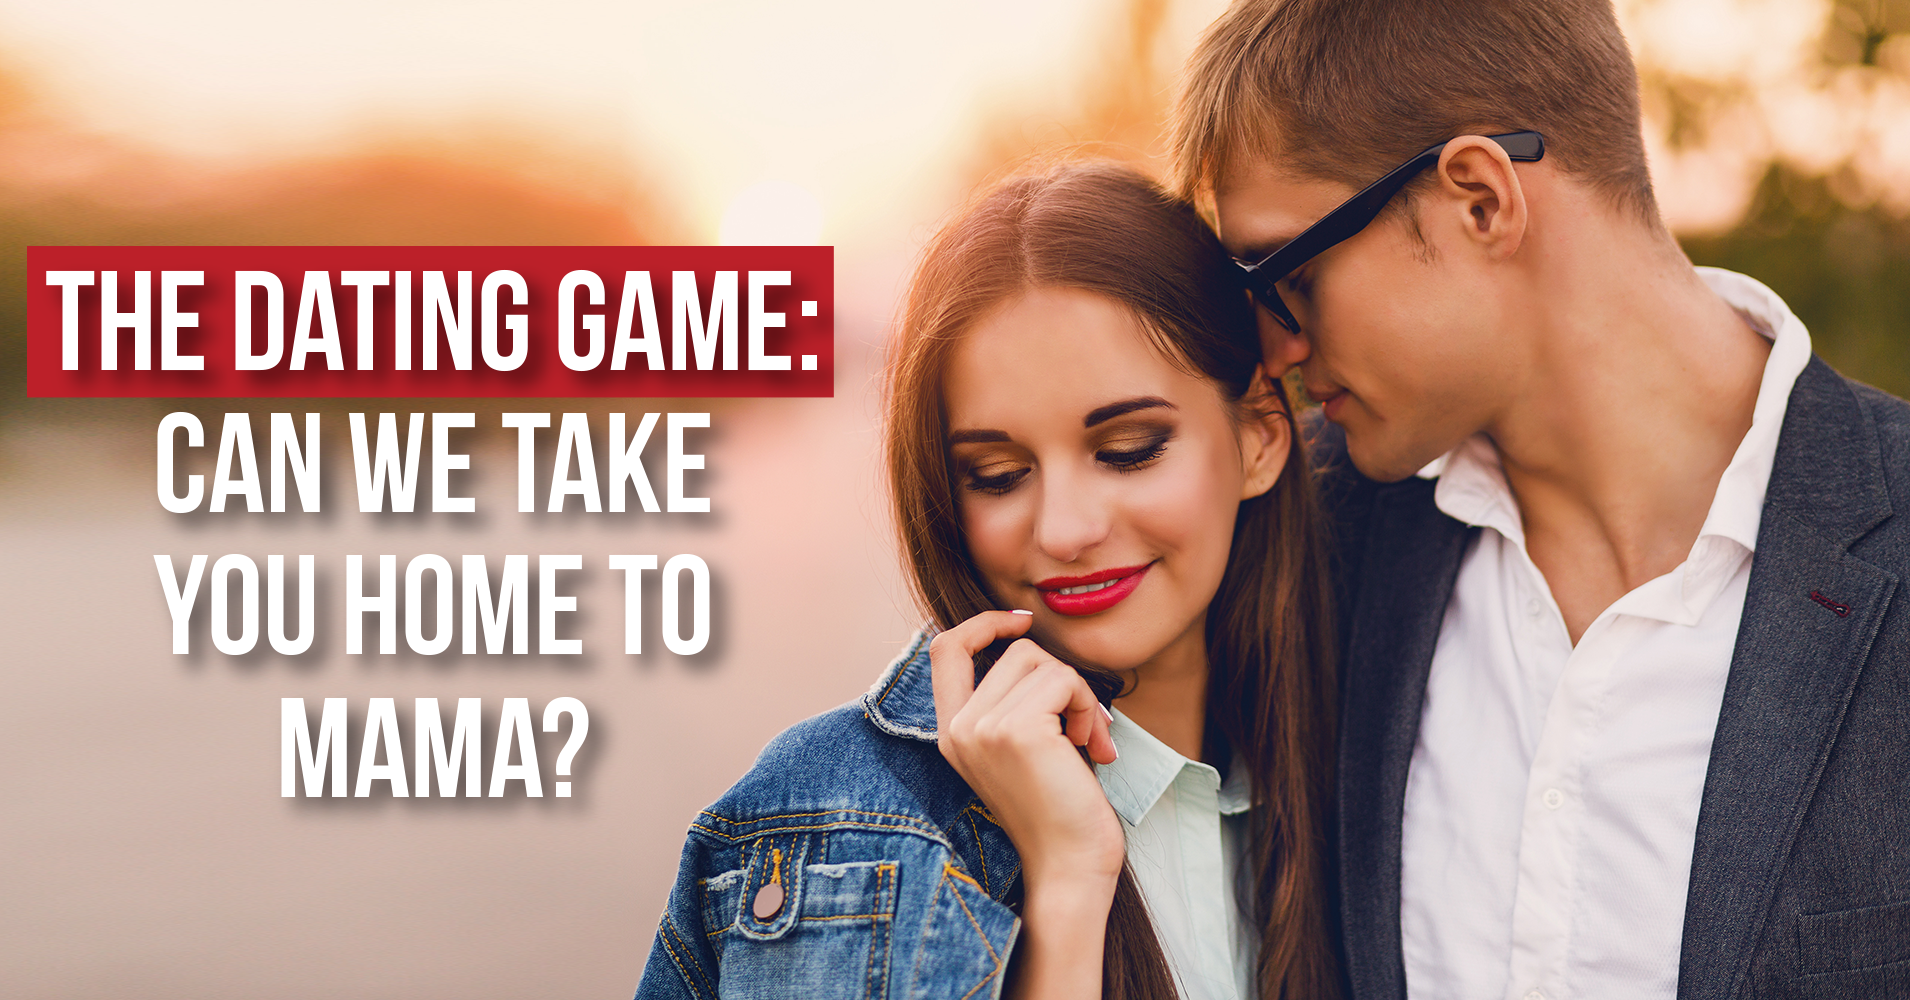 dating website for gamers Premium games templates by template monster - a web design giant trusted by hundreds of thousands of happy customers 24/7 support included level up your gaming website with pro design.